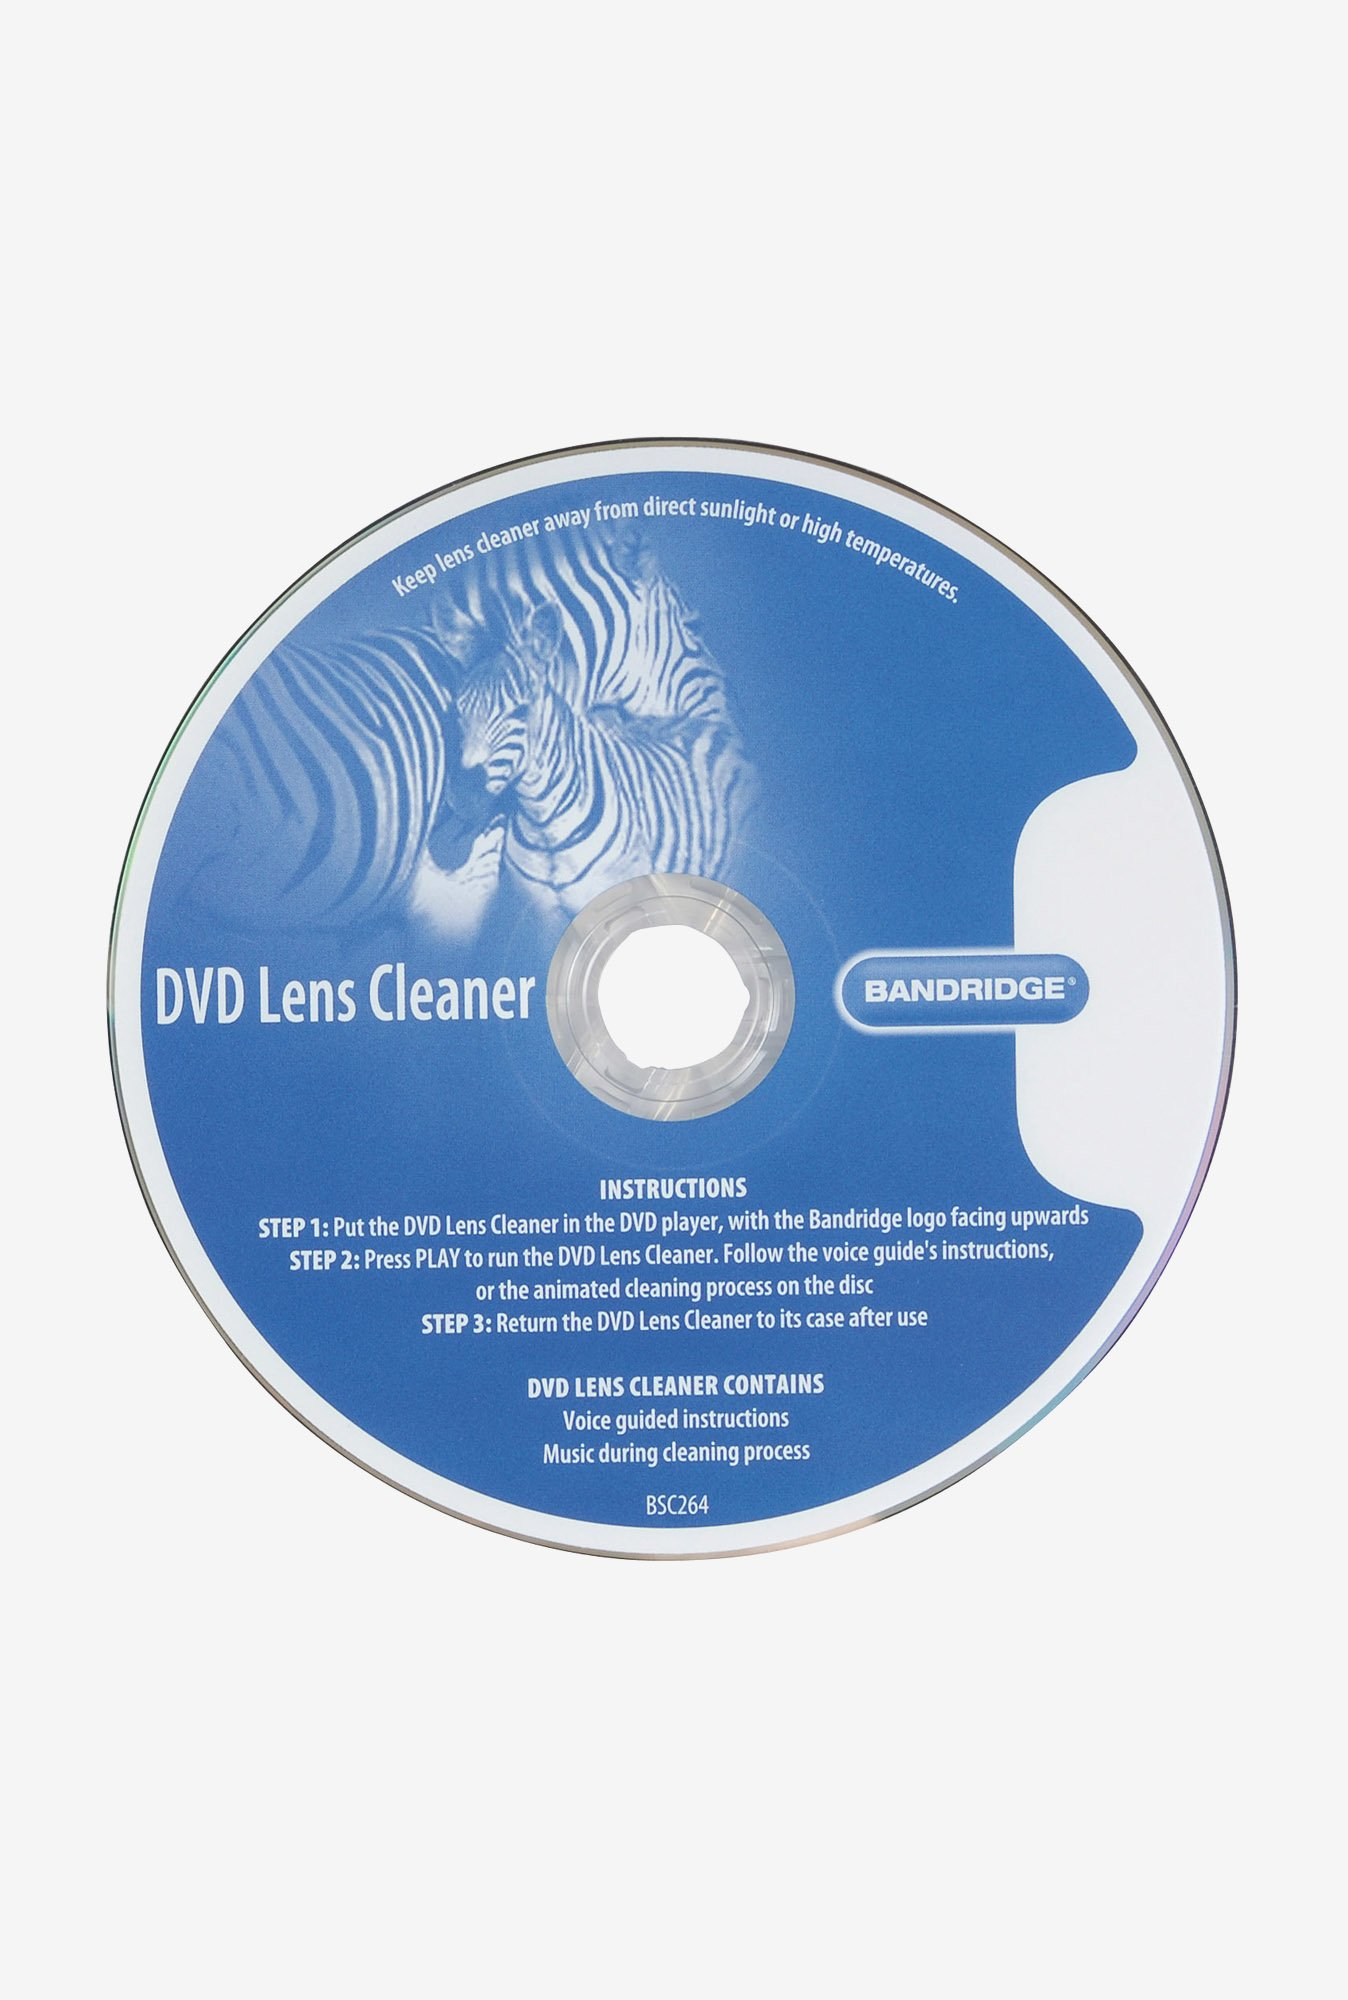 Bandridge BSC264 DVD Lens Cleaner Blue